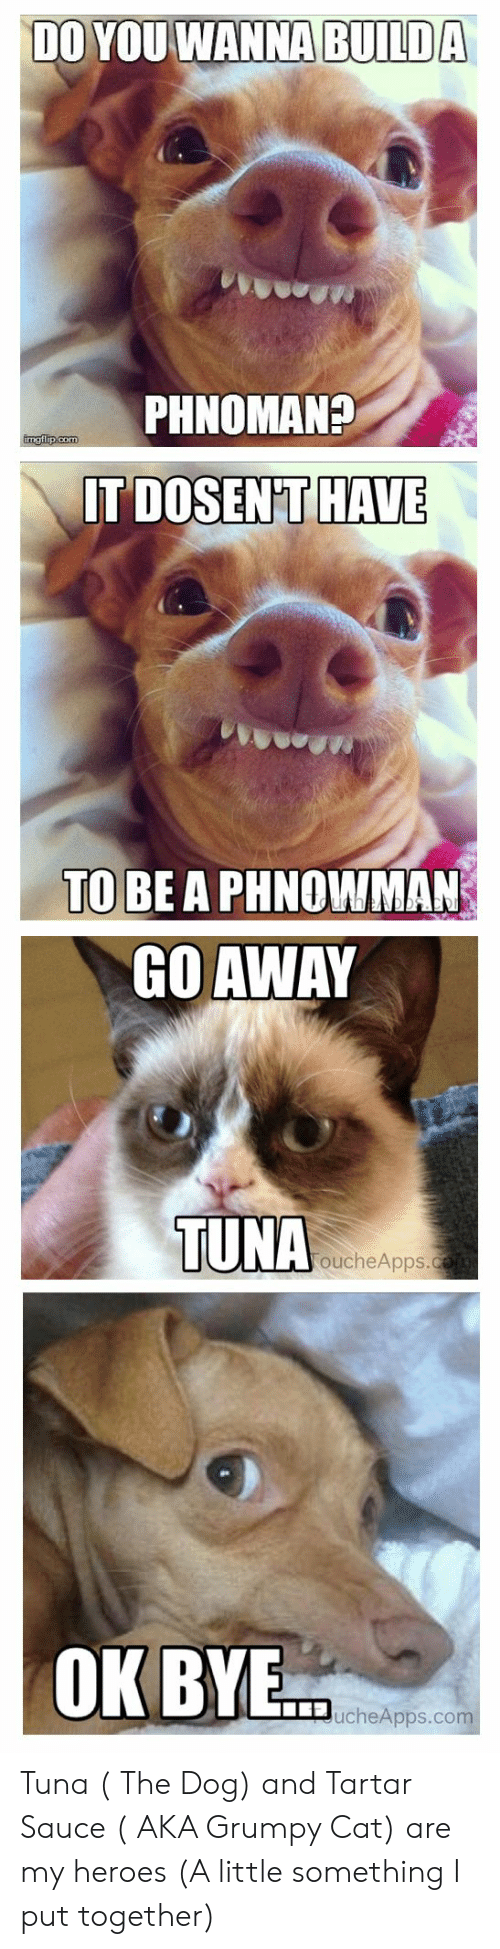 Grumpy Cat, Heroes, and Sauce: DO YOUWANNA  BUILDA  PHNOMAN?  DOSENFT HAVE  TO  BE A PHNOWMAN  GO AWAY  TUNA  oucheApps.  OKBYE  ucheApps.co Tuna ( The Dog) and Tartar Sauce ( AKA Grumpy Cat) are my heroes (A little something I put together)